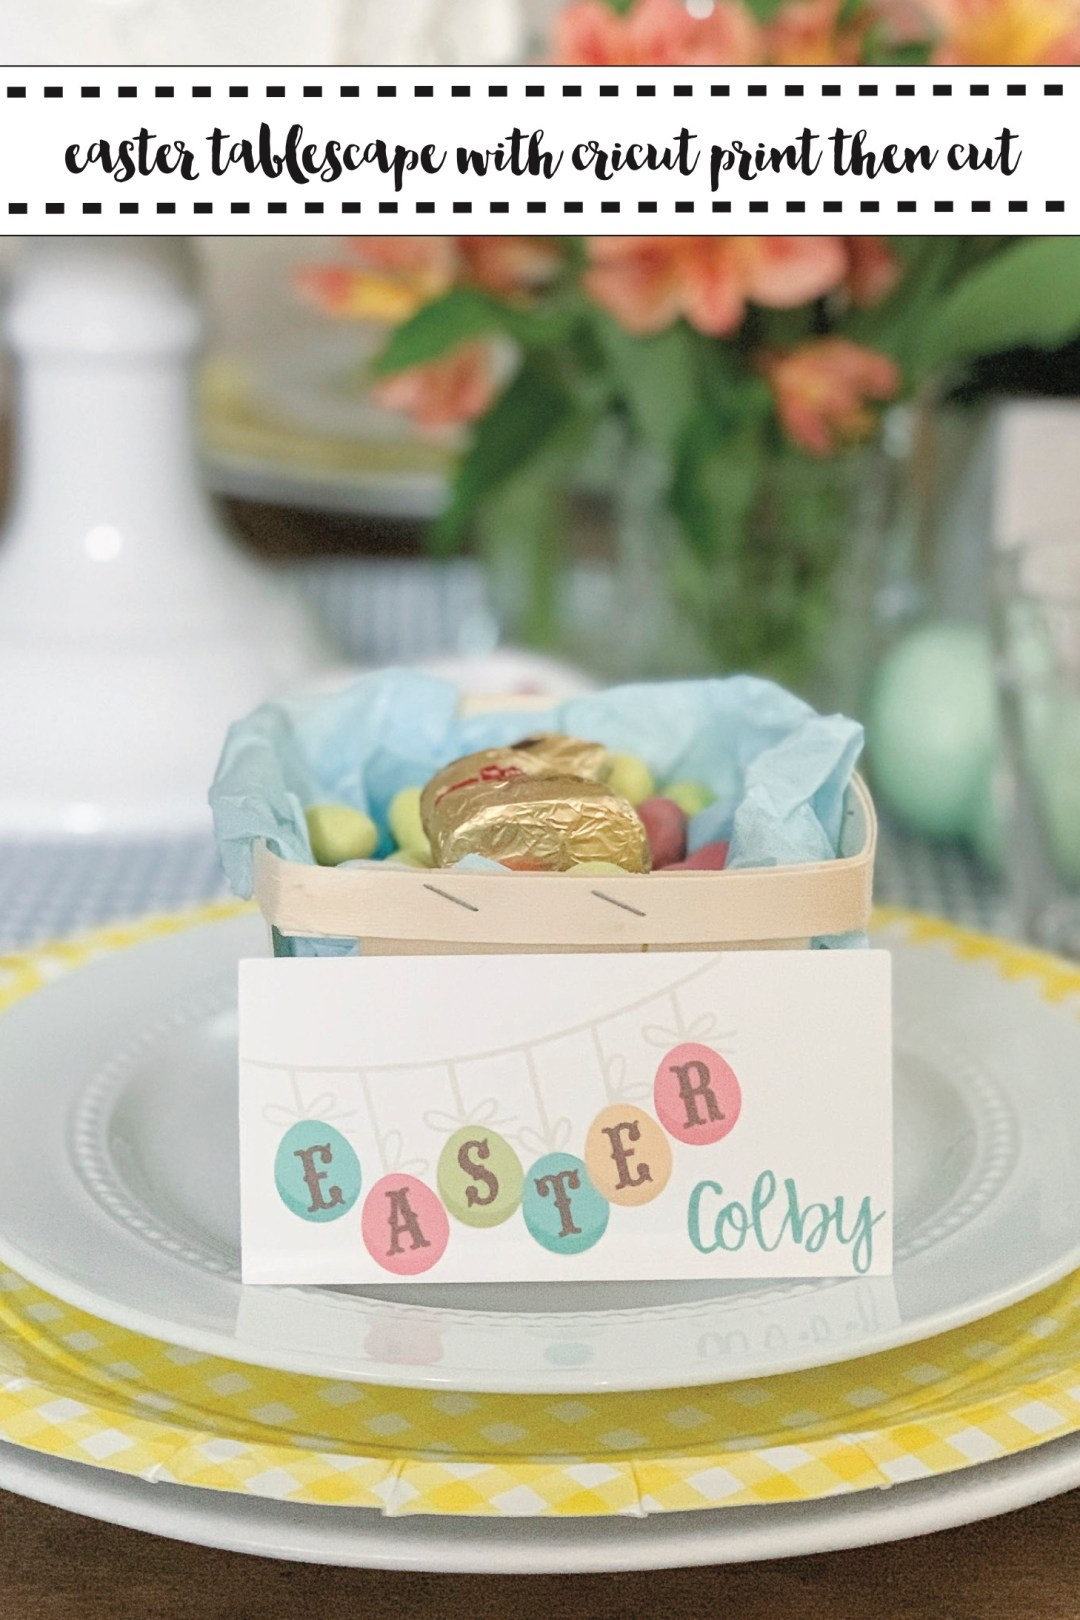 Cricut Print Then Cut Easter Placecard